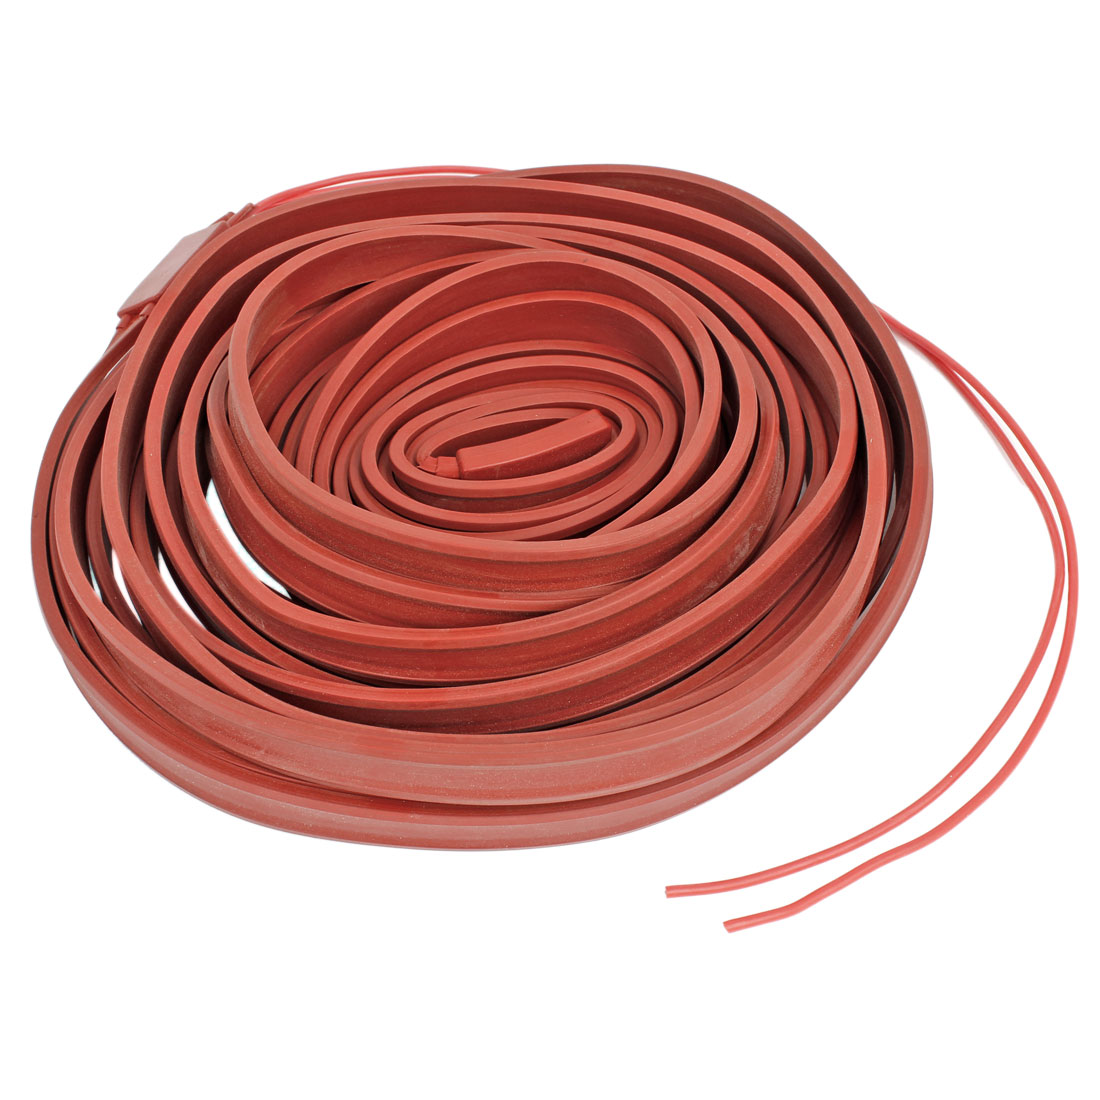 60V Red Freezing Protection Waterproof Heater Strip Pipe Heating Cable 10M x 15mm